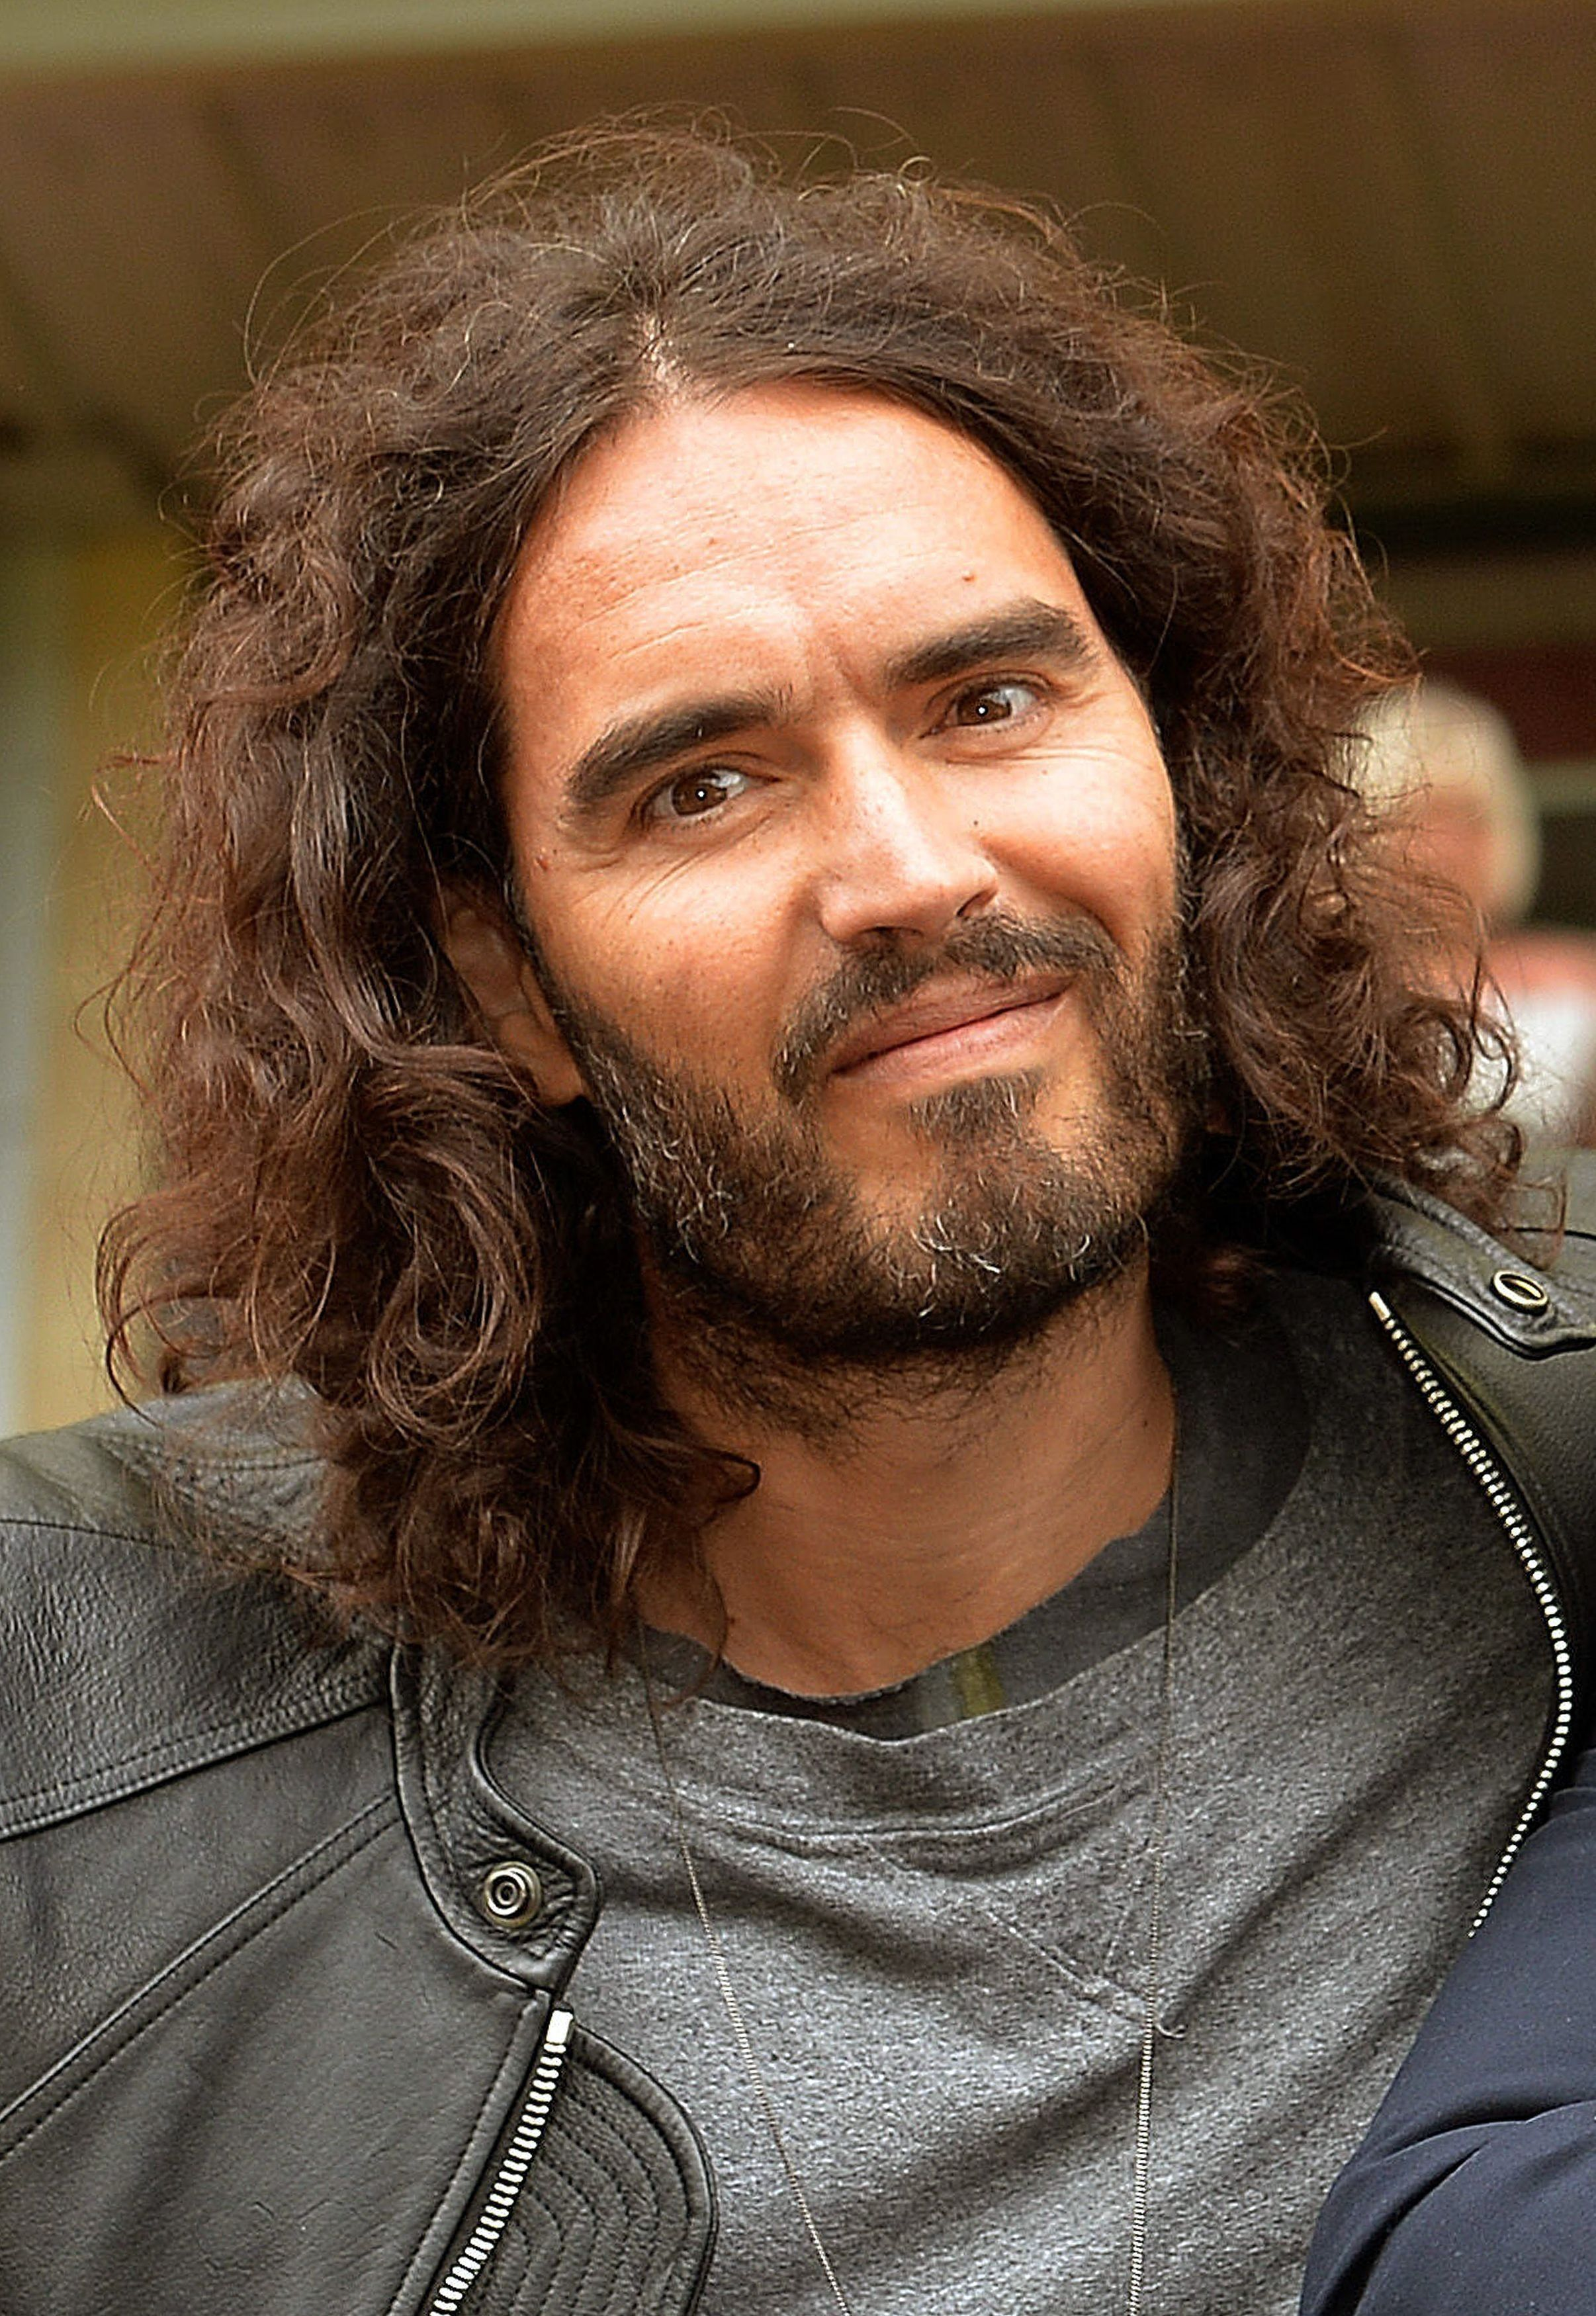 Russell Brand 'Announced Birth Of Baby' During Stand-Up Gig